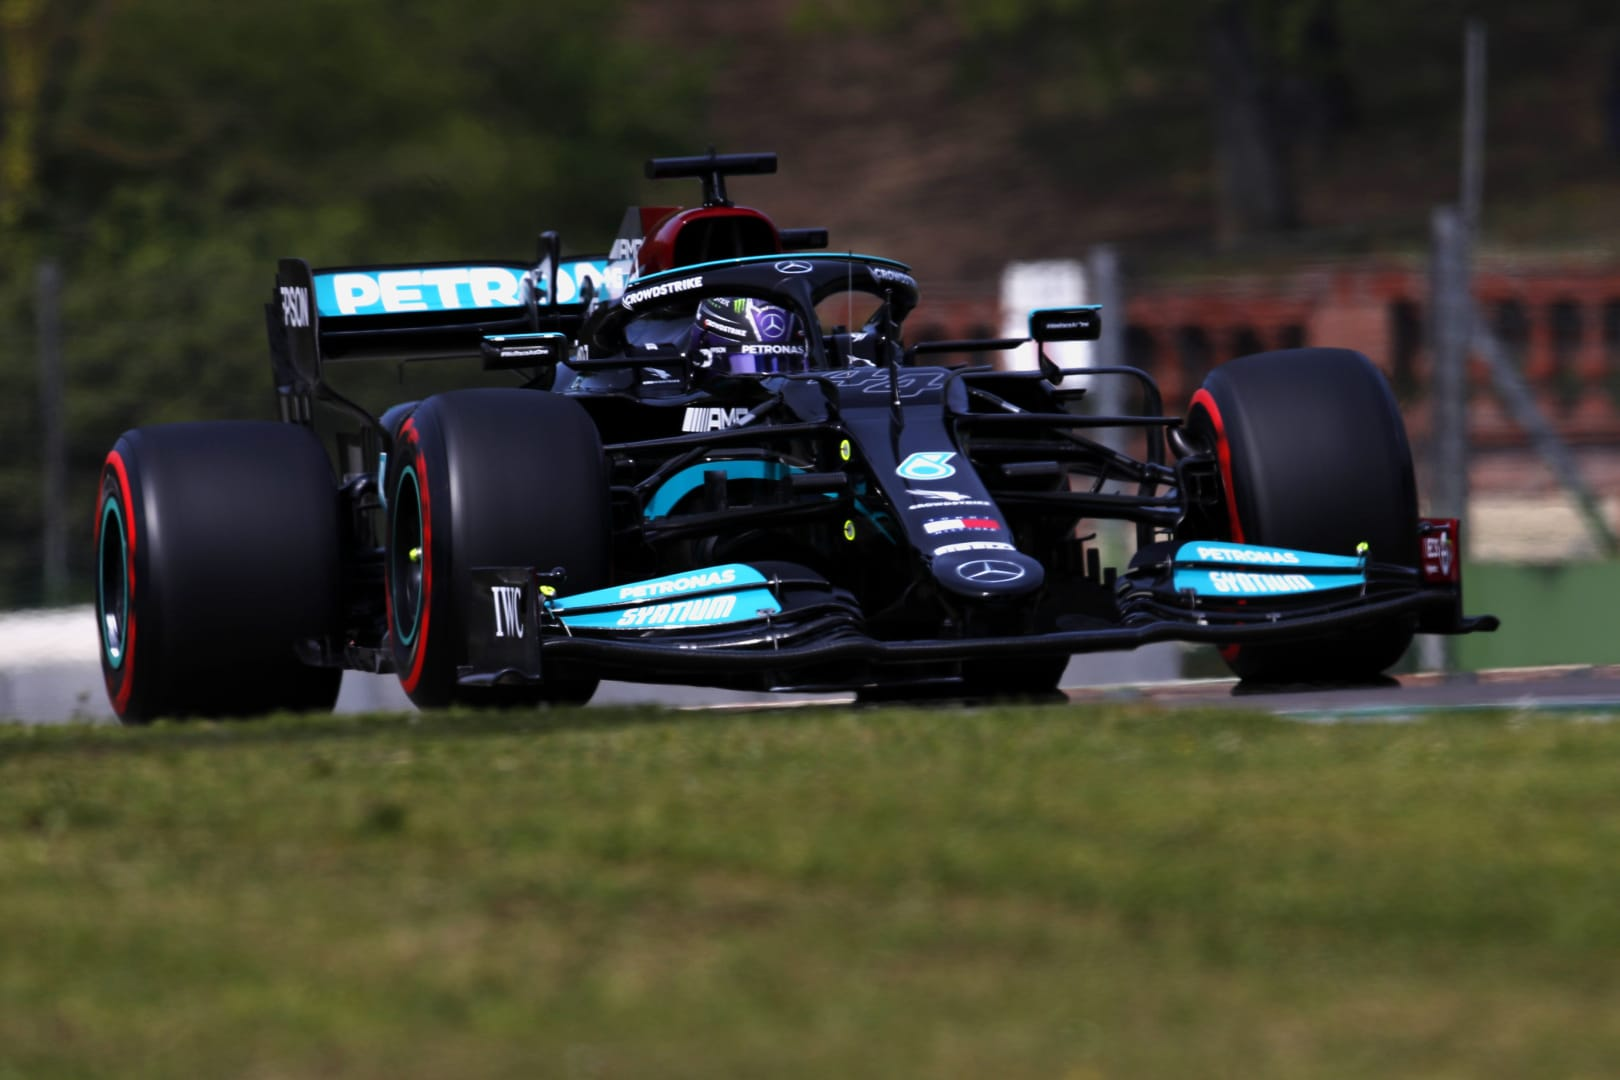 Hamilton takes Ninety-ninth Career Pole Position with Red Bulls on the charge - The Checkered Flag